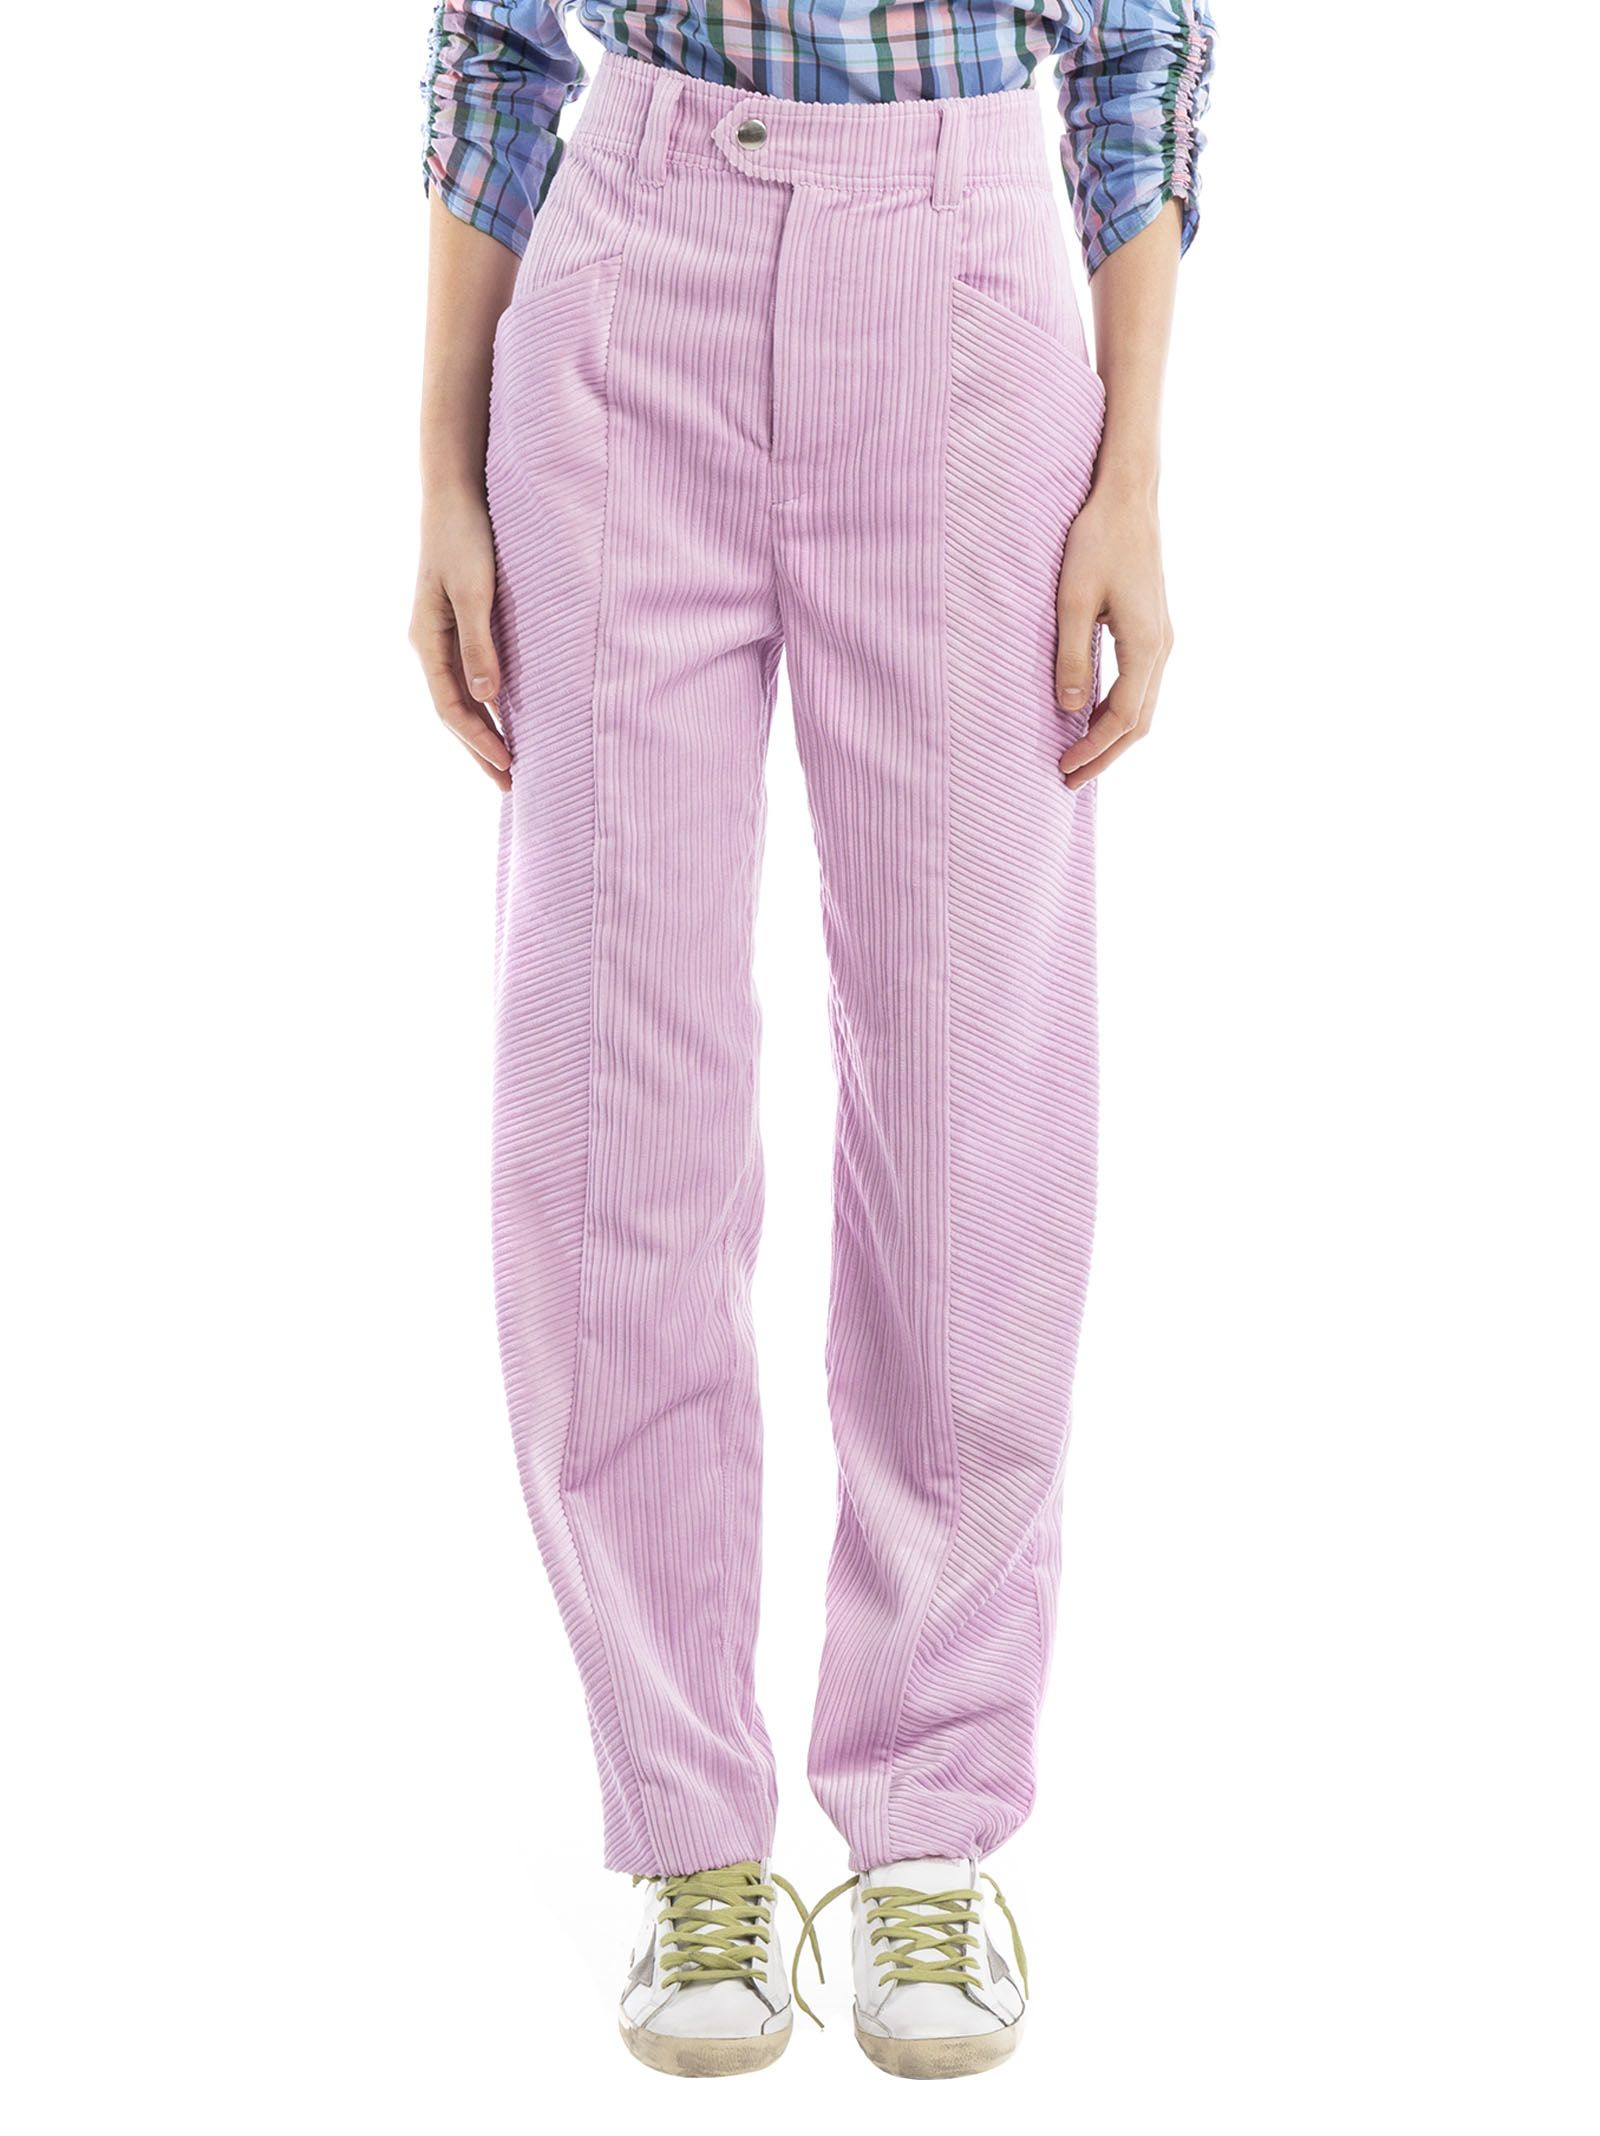 Isabel Marant High Waisted Trousers In Pink